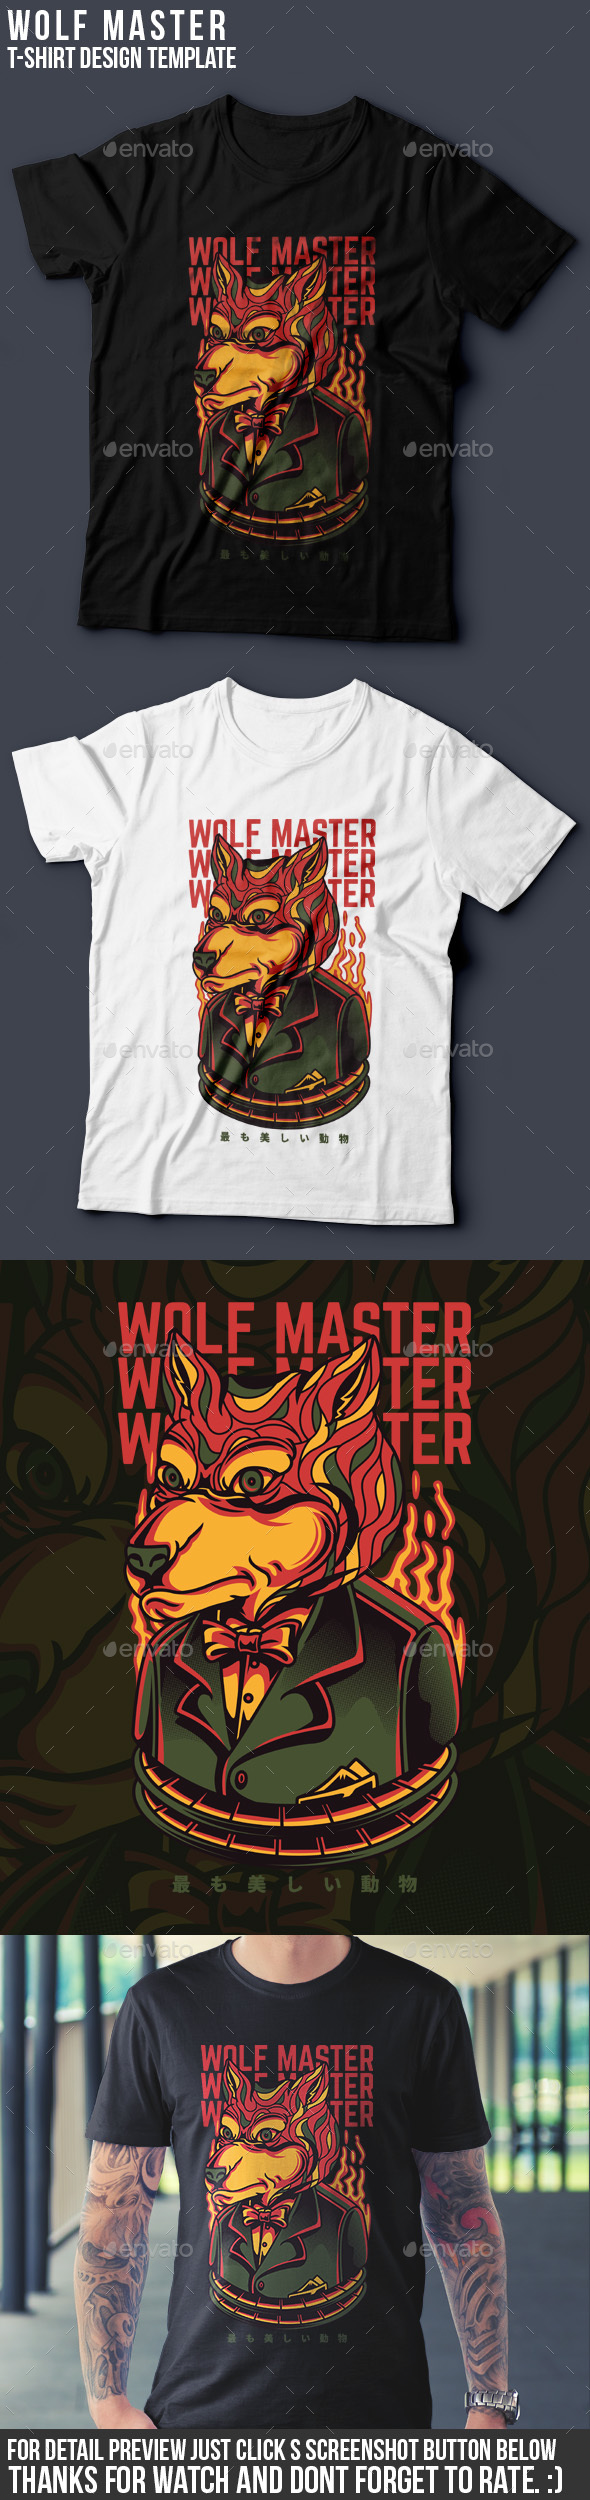 Wolf Master T-Shirt Design - Sports & Teams T-Shirts